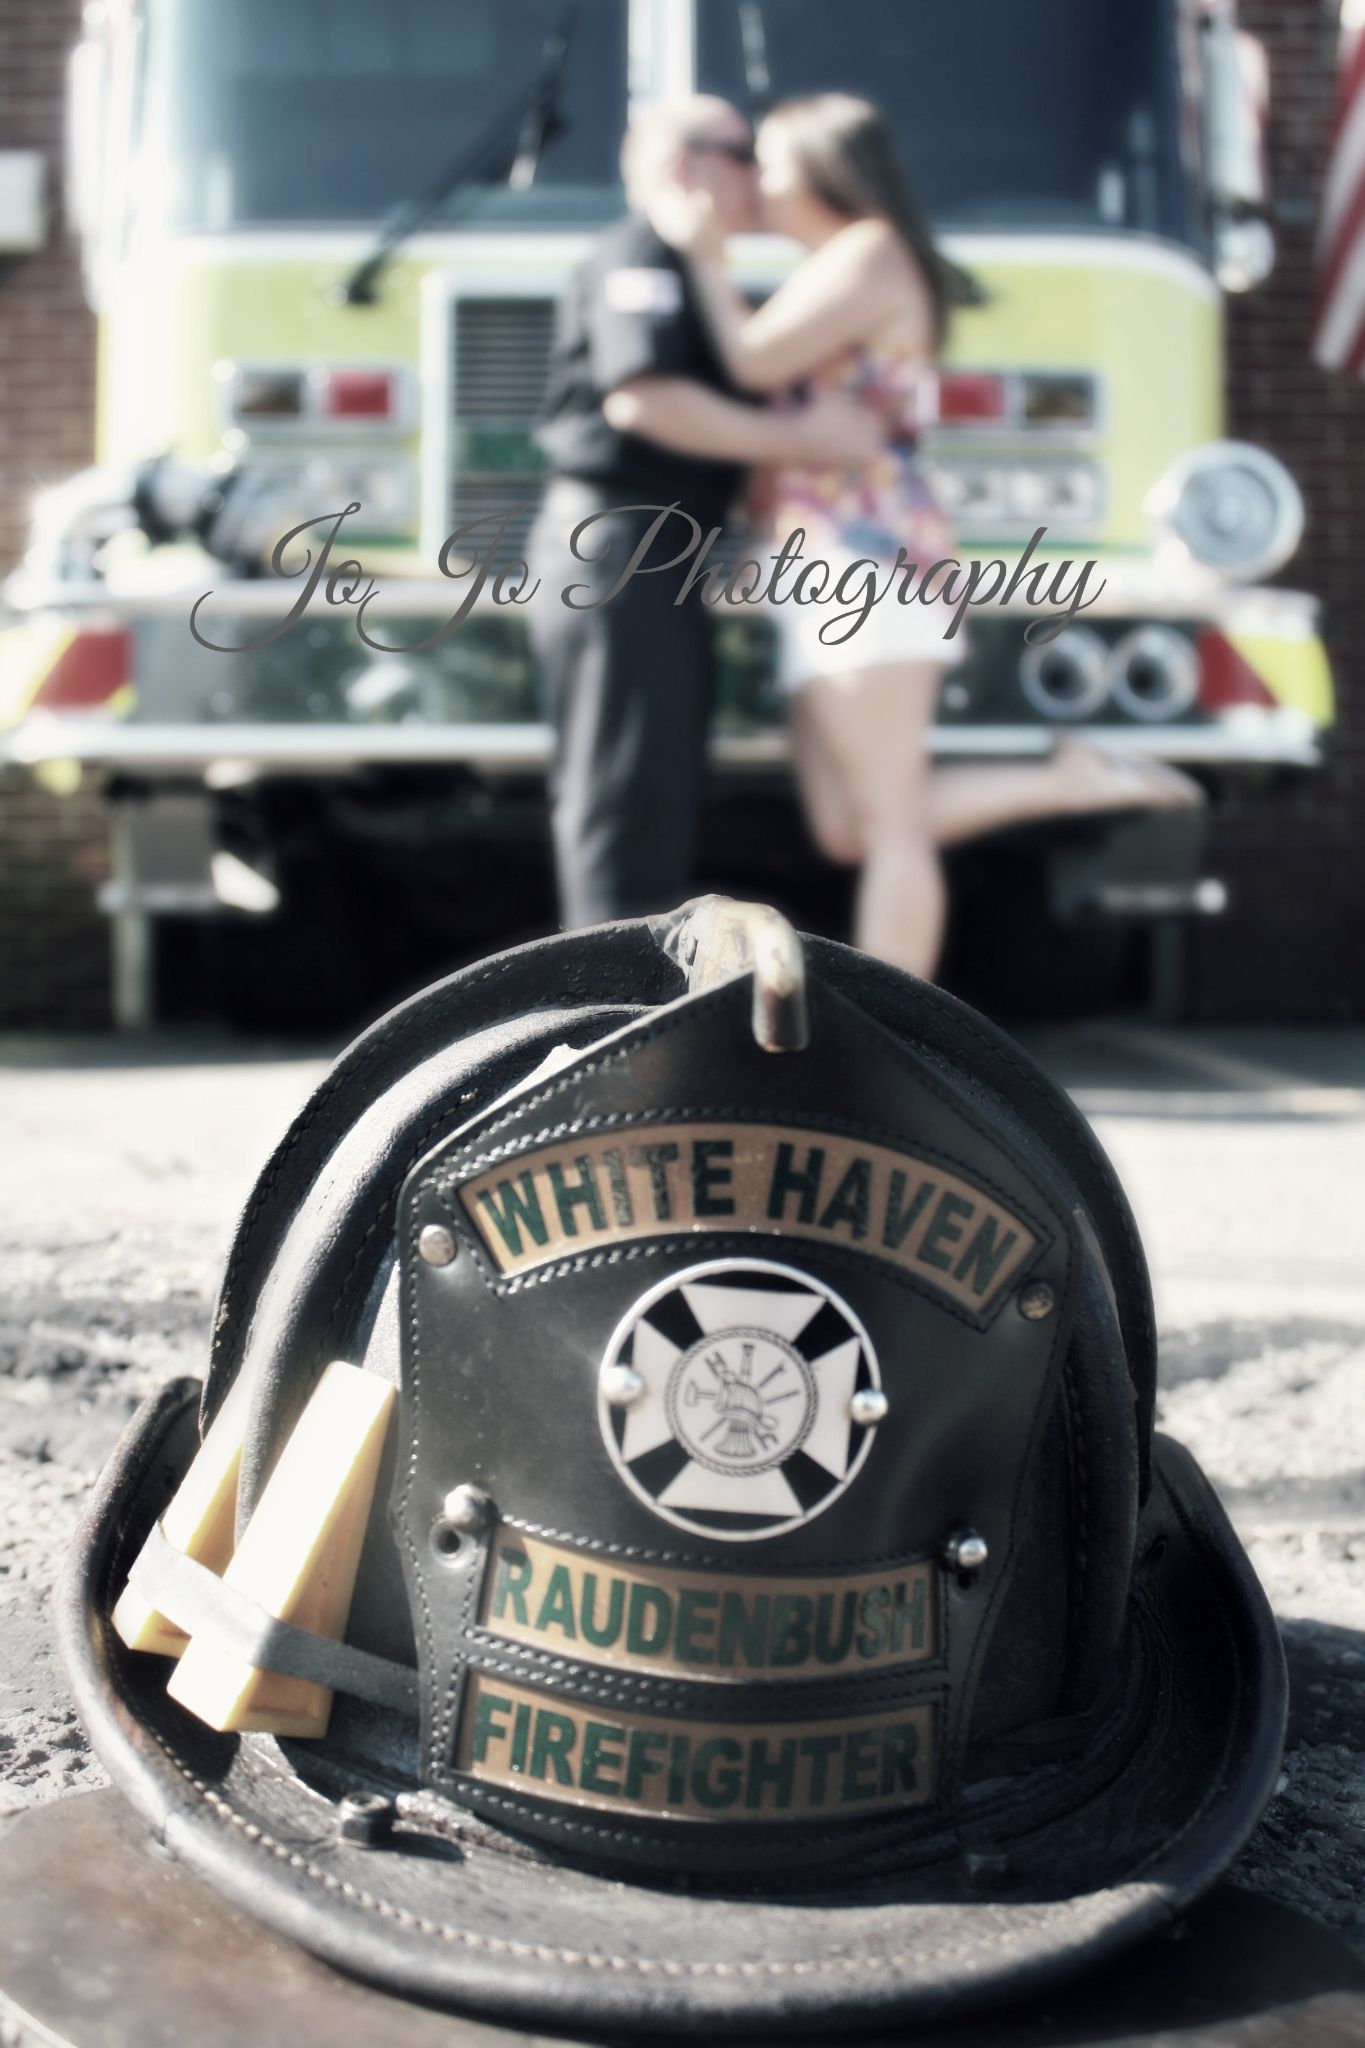 Firefighter country engagement photos by brennah.hartmann